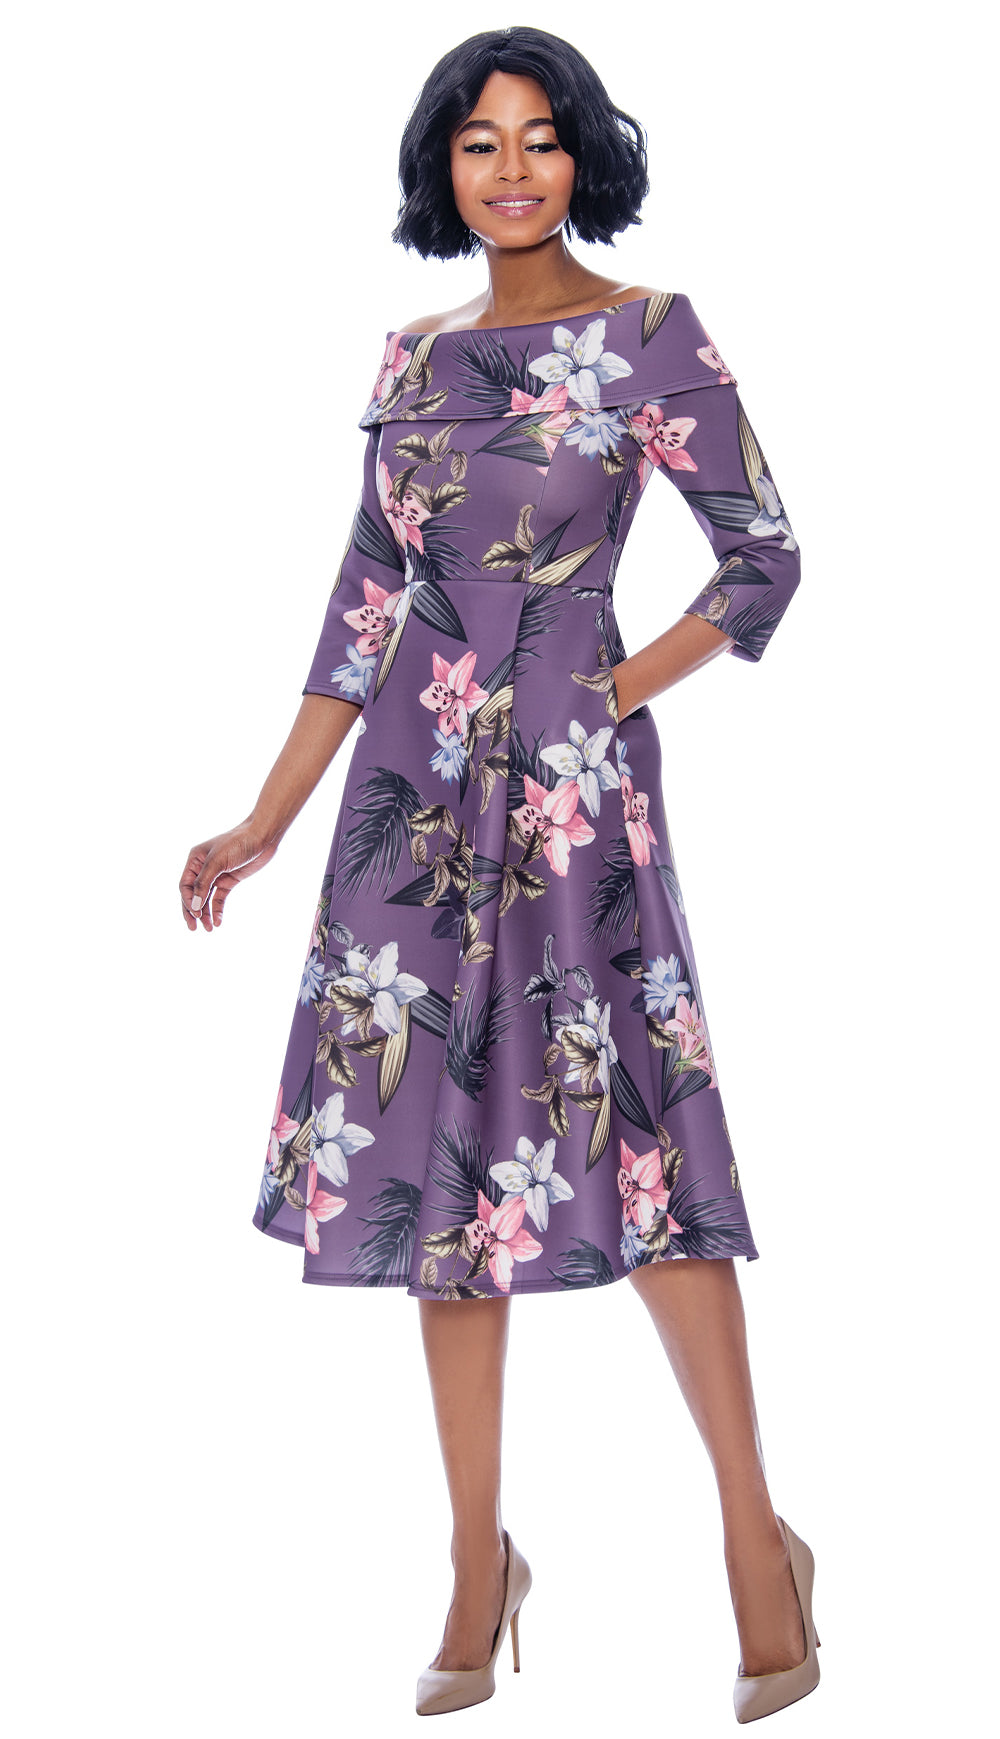 Terramina Dress 7854 - Church Suits For Less